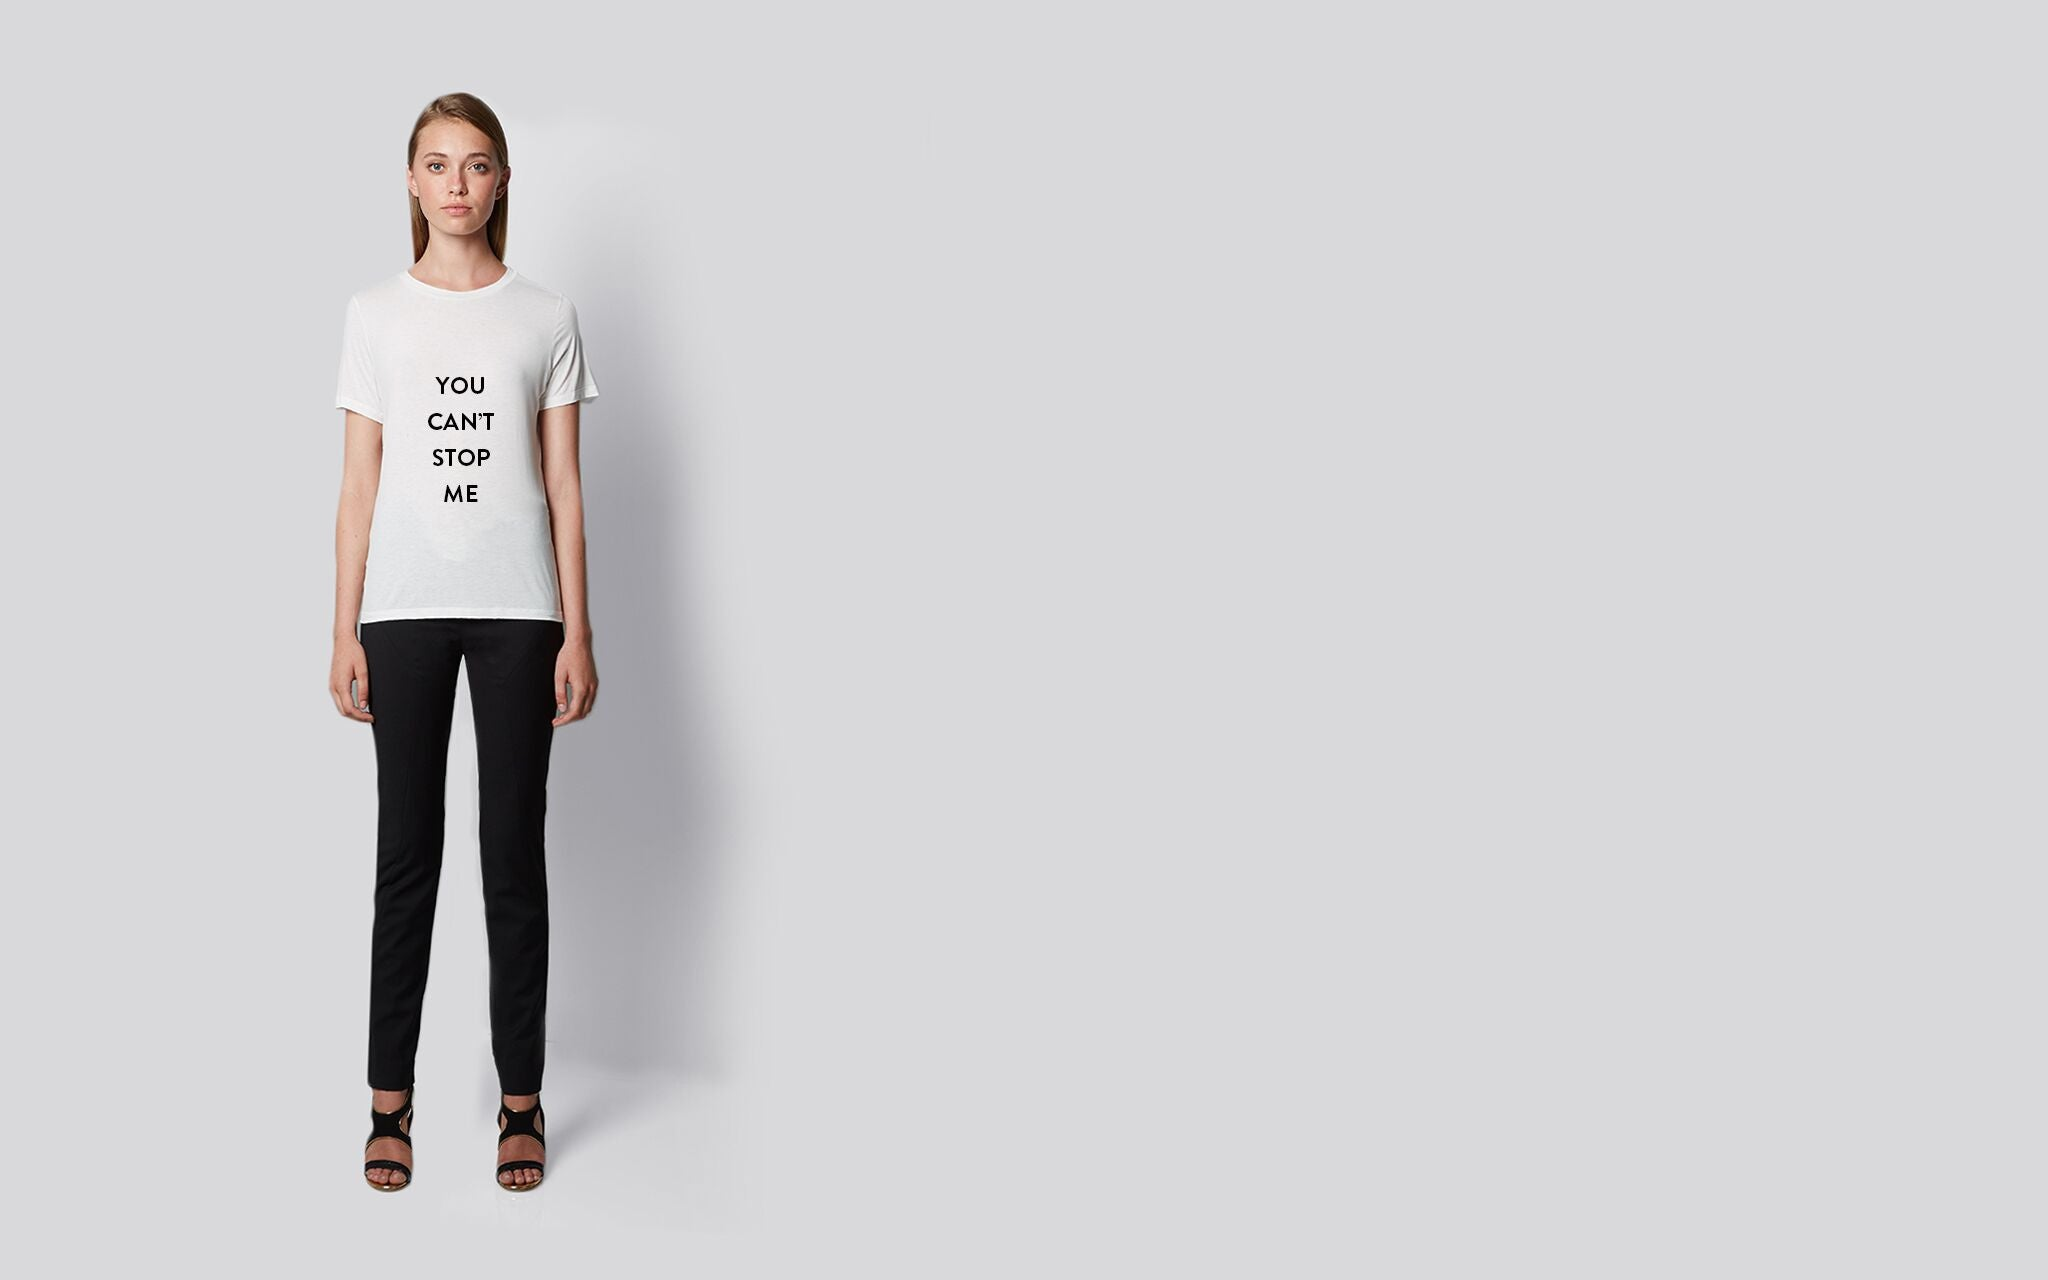 You can't stop me tee